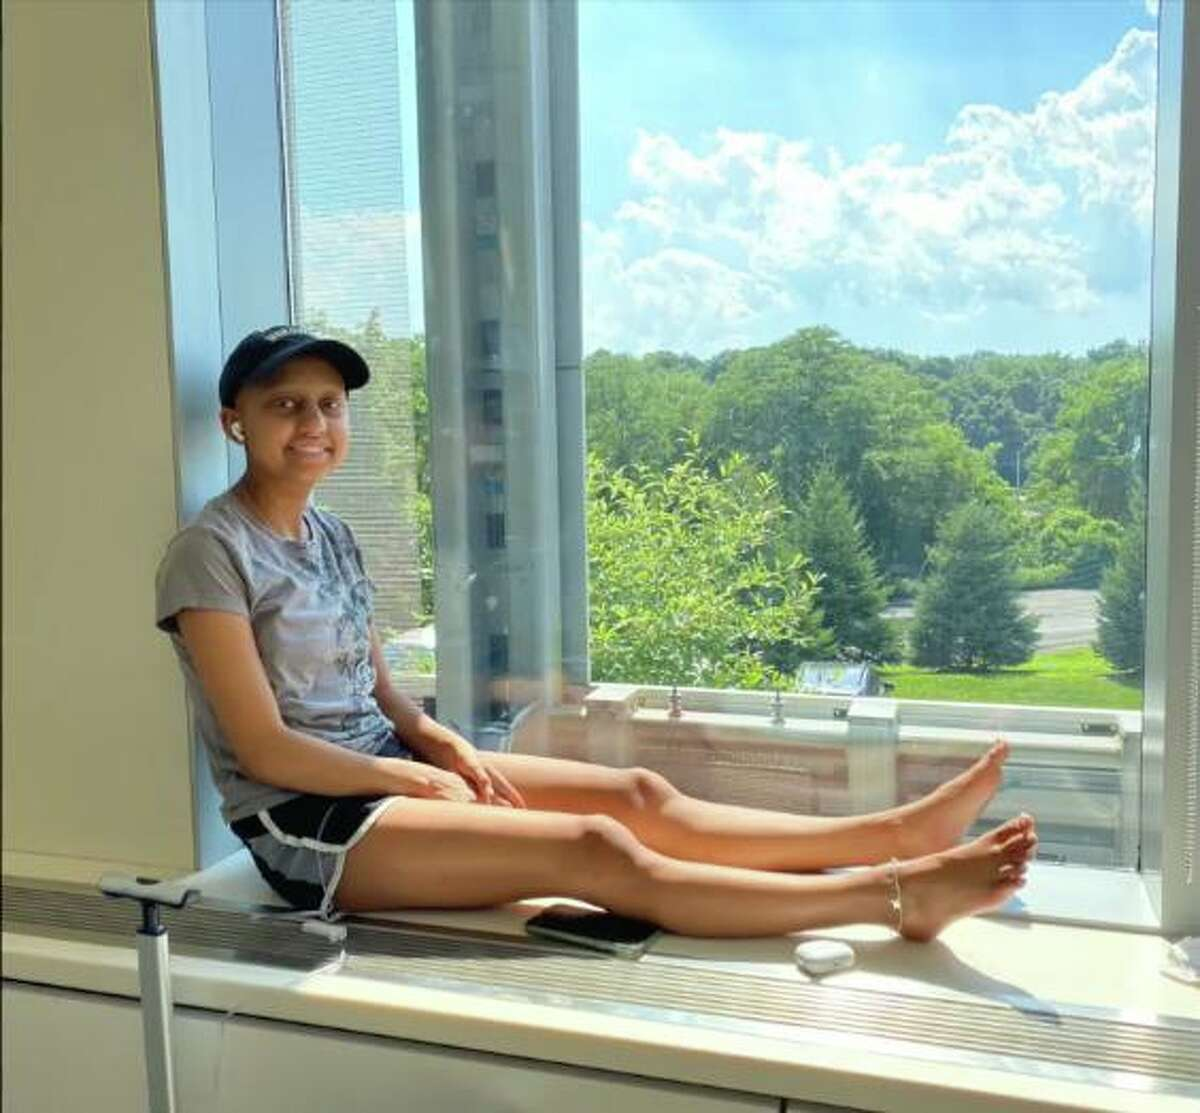 Sonia Kocinsky listens to music during a break from physical therapy.